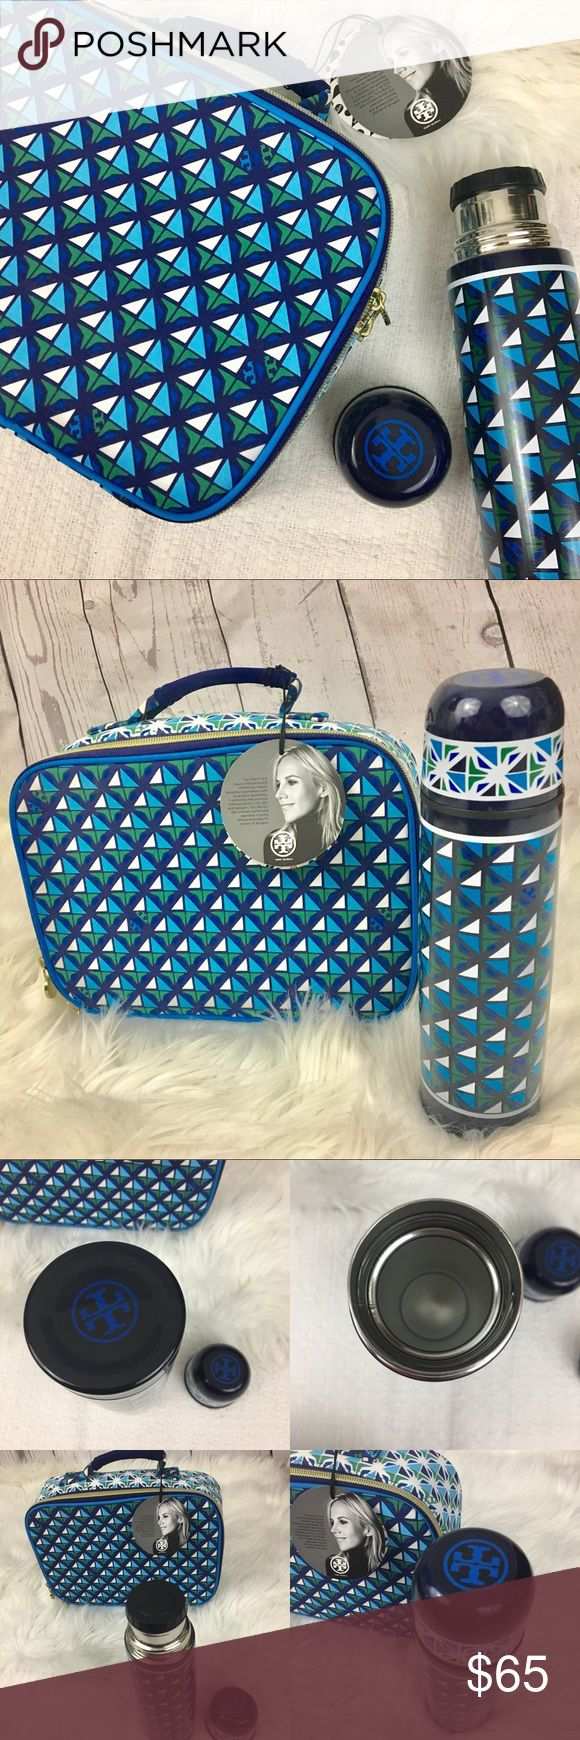 "Tory Burch lunch box & thermos target limited rare Tory Burch Target/Neiman Marcus limited edition lunch box and thermos. Lunch box is NWT and and thermos is NWOT. Tiny scuff on the thermos cap. PEVA lining the lunch box with gold colored hardware. Measurements 10"" x 7.5"" x 3"" Tory Burch Bags"